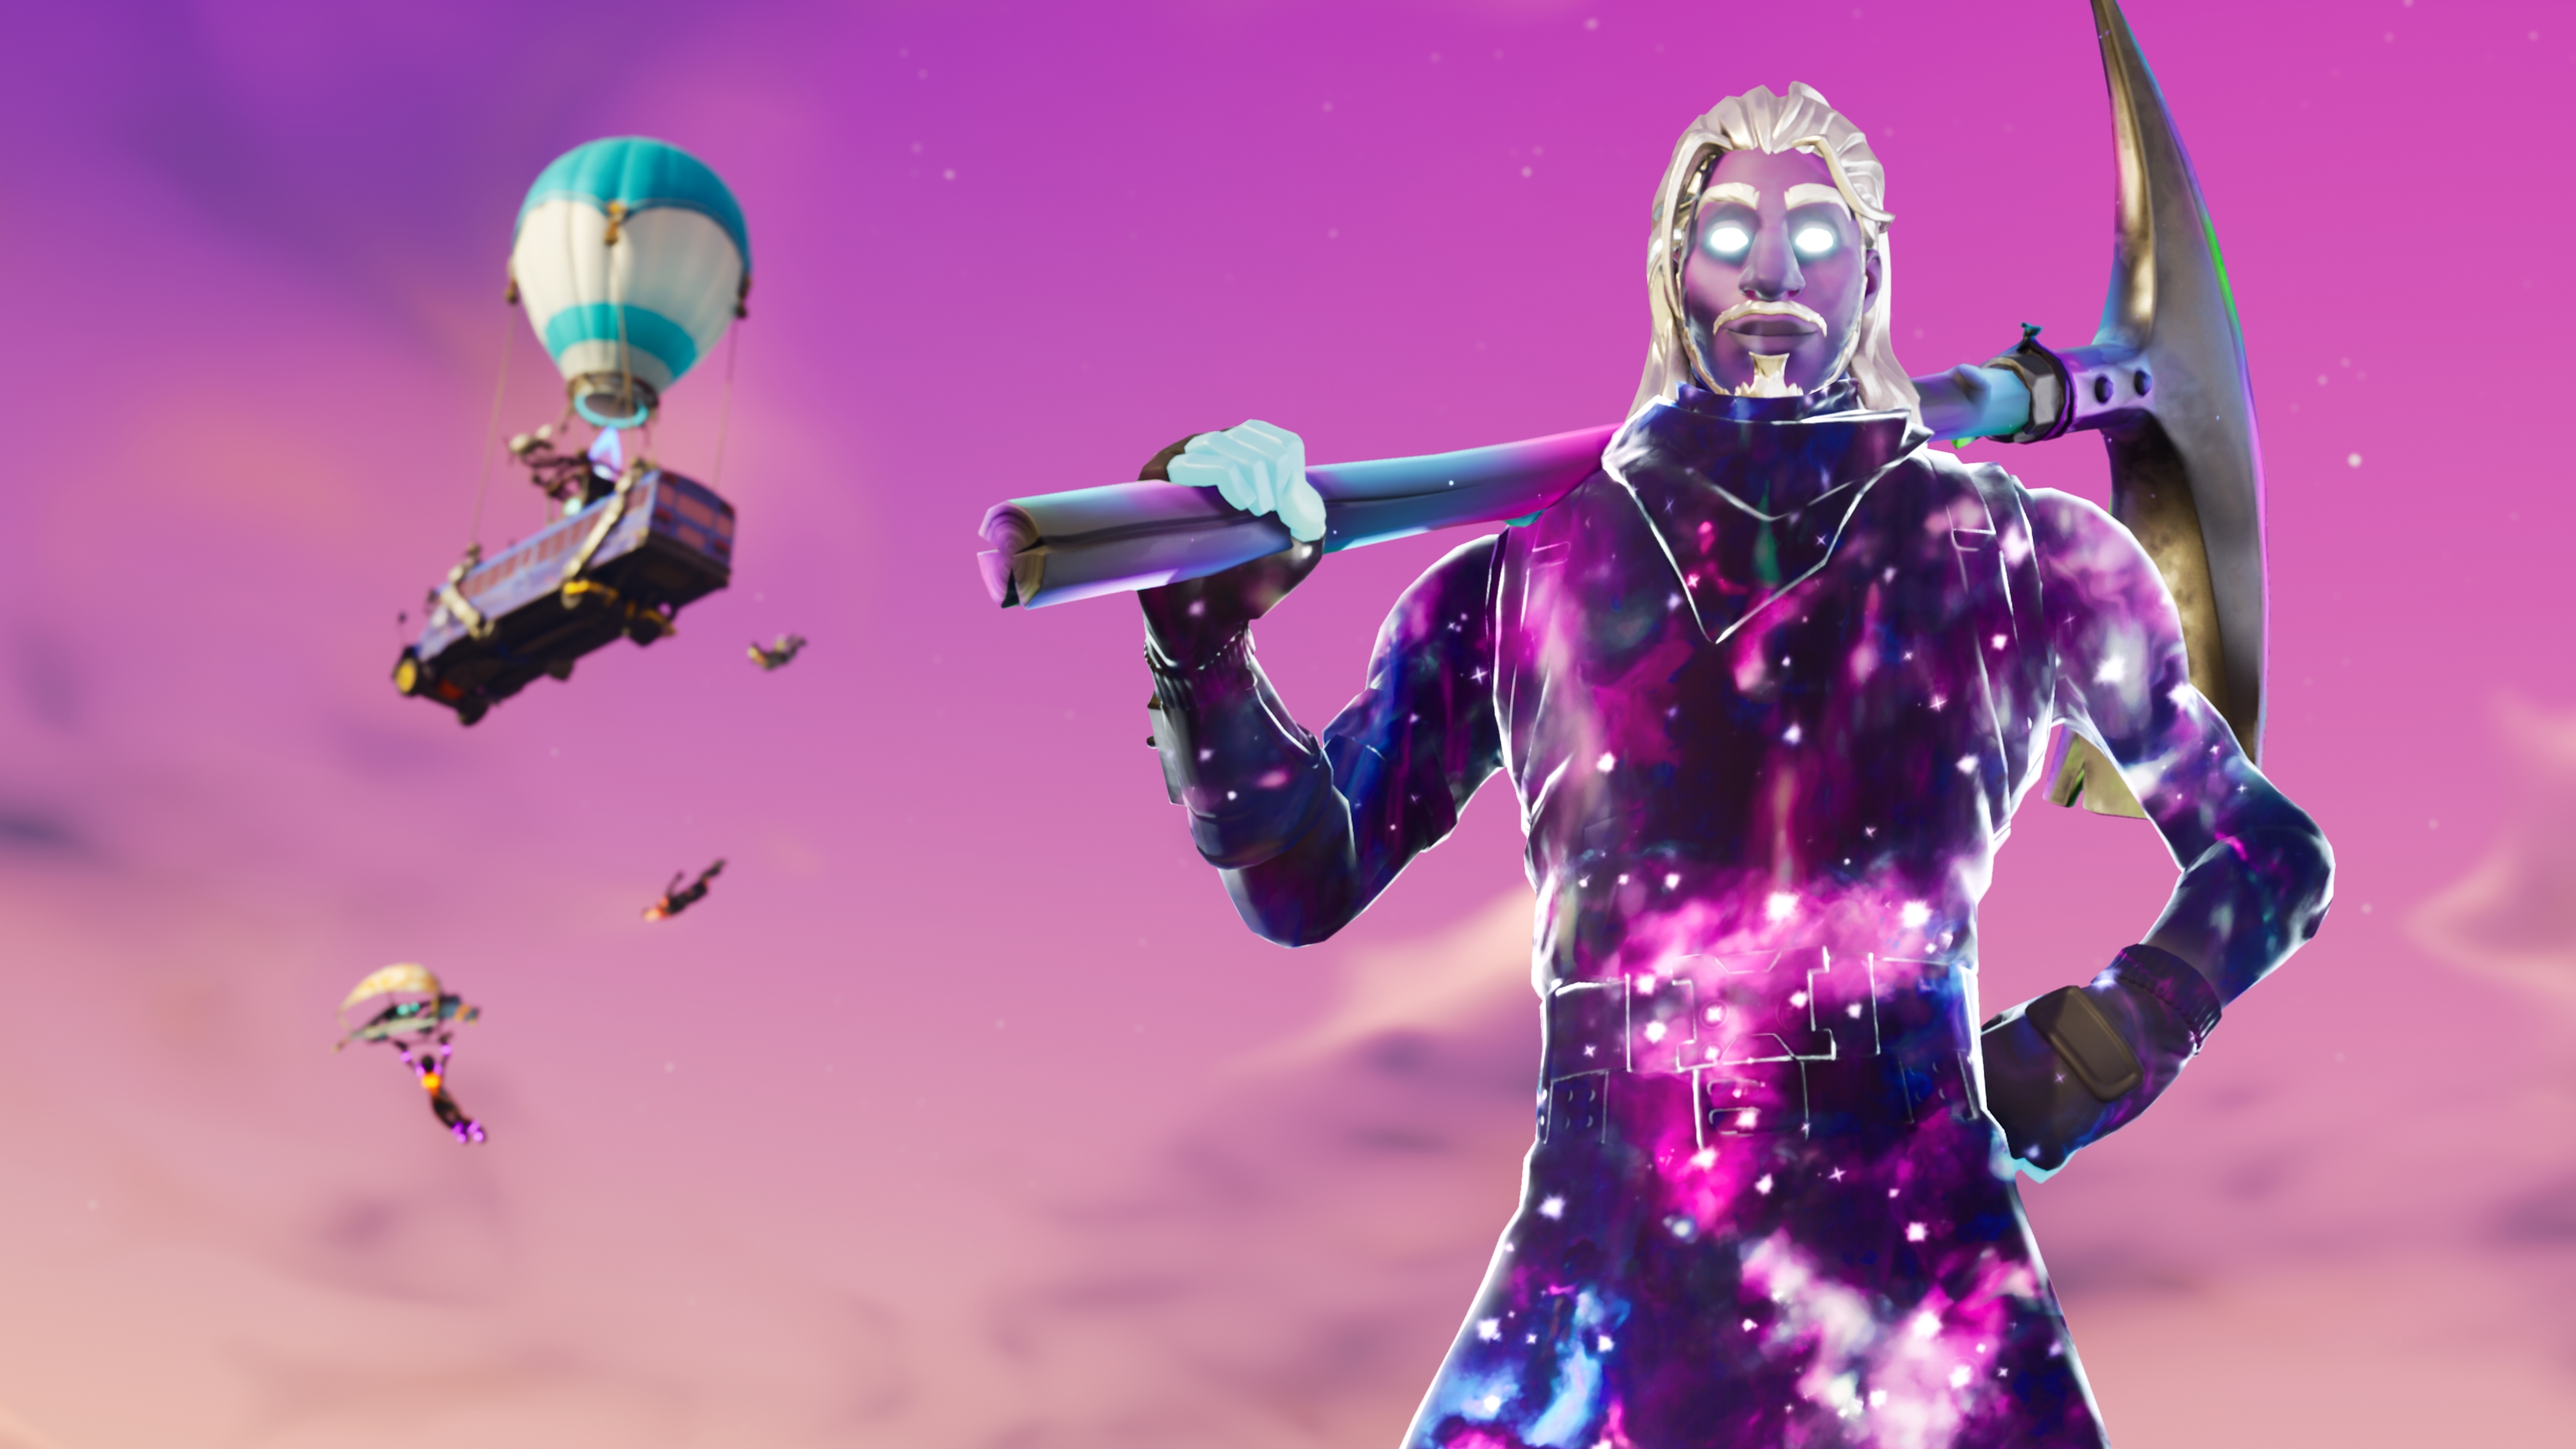 1920x1080 Galaxy Man Fortnite Season 6 4K Laptop Full HD